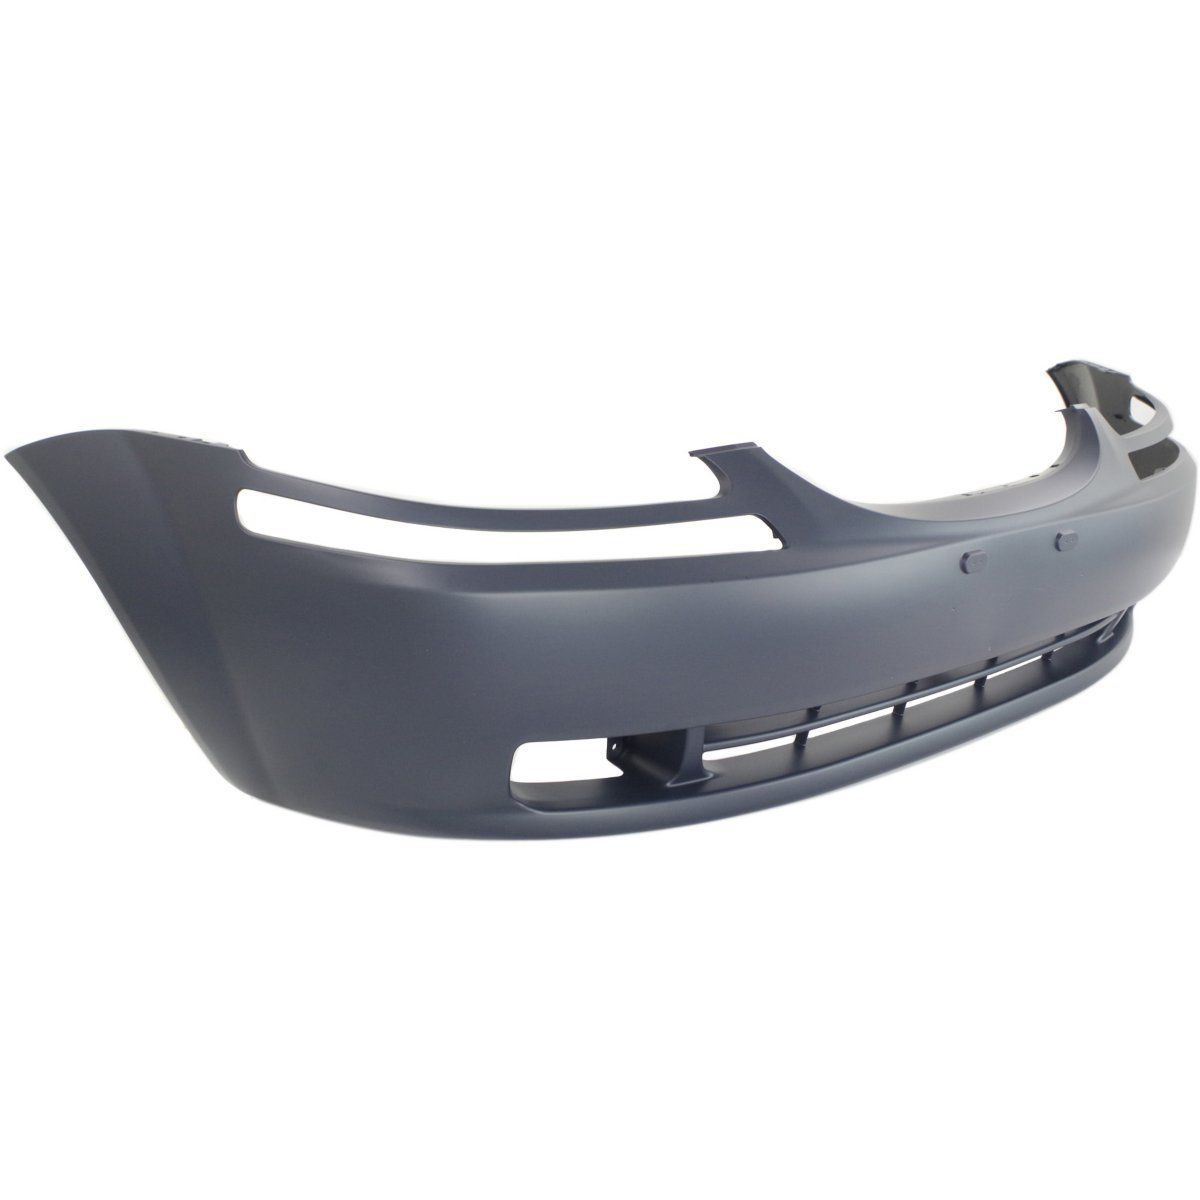 2004-2008 CHEVY AVEO Front Bumper Cover 4dr sedan Painted to Match